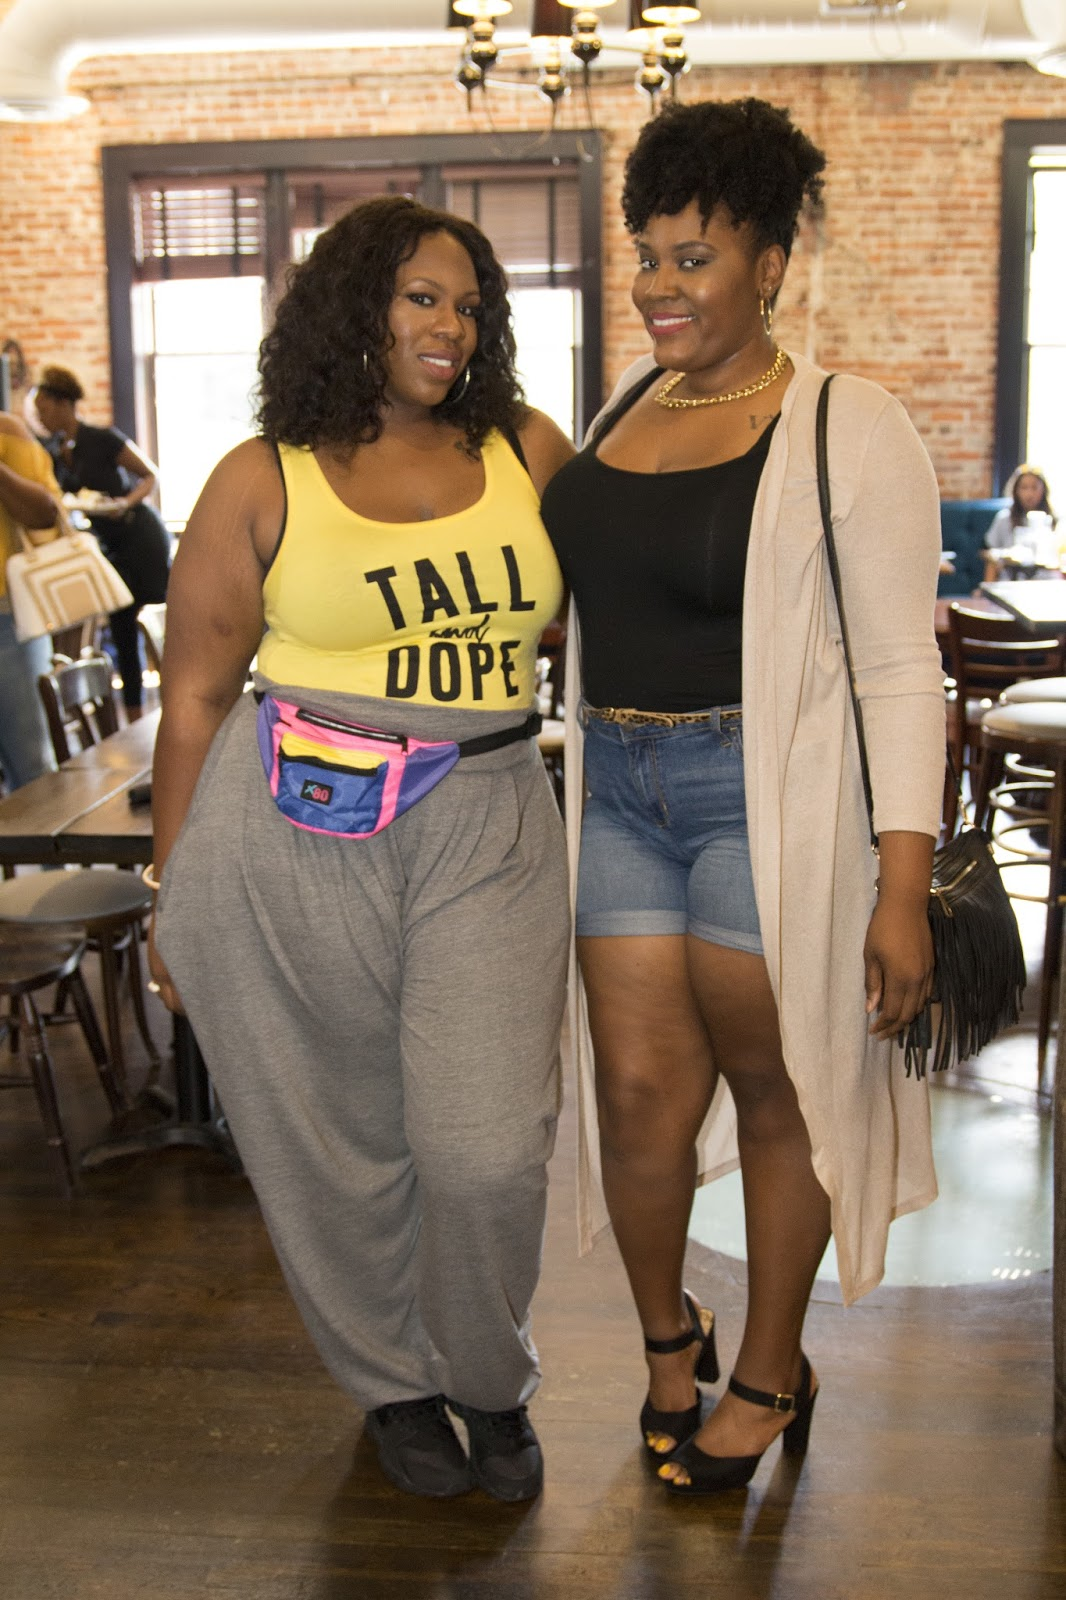 Tall & Dope Meet-Up - The Curvy Girl Chronicles